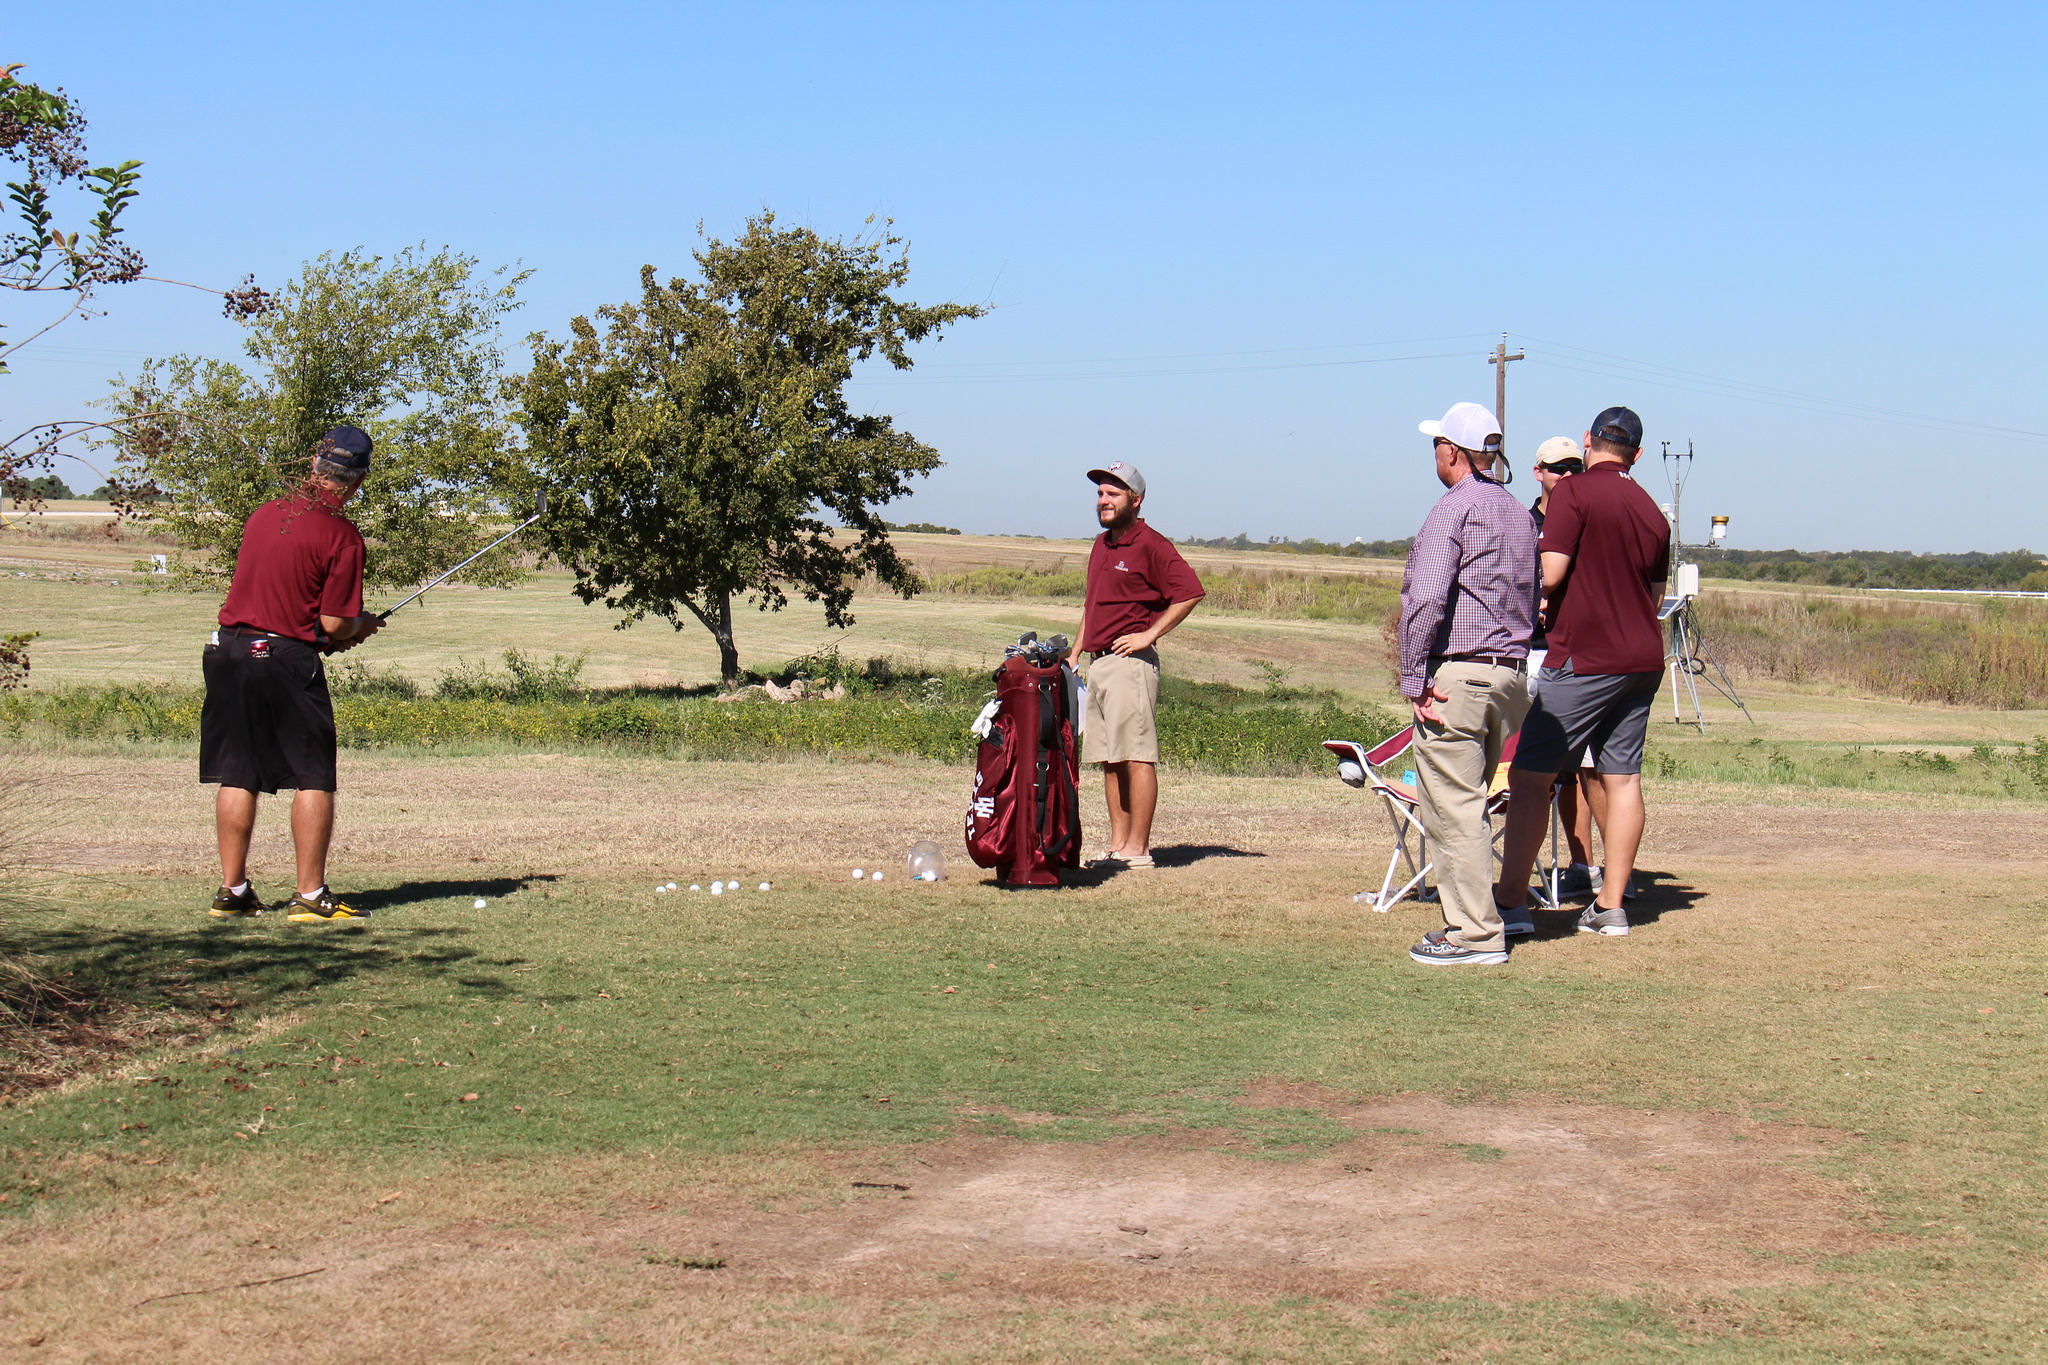 Aggie Turf Students held a closest-to-the-pin contest for attendees